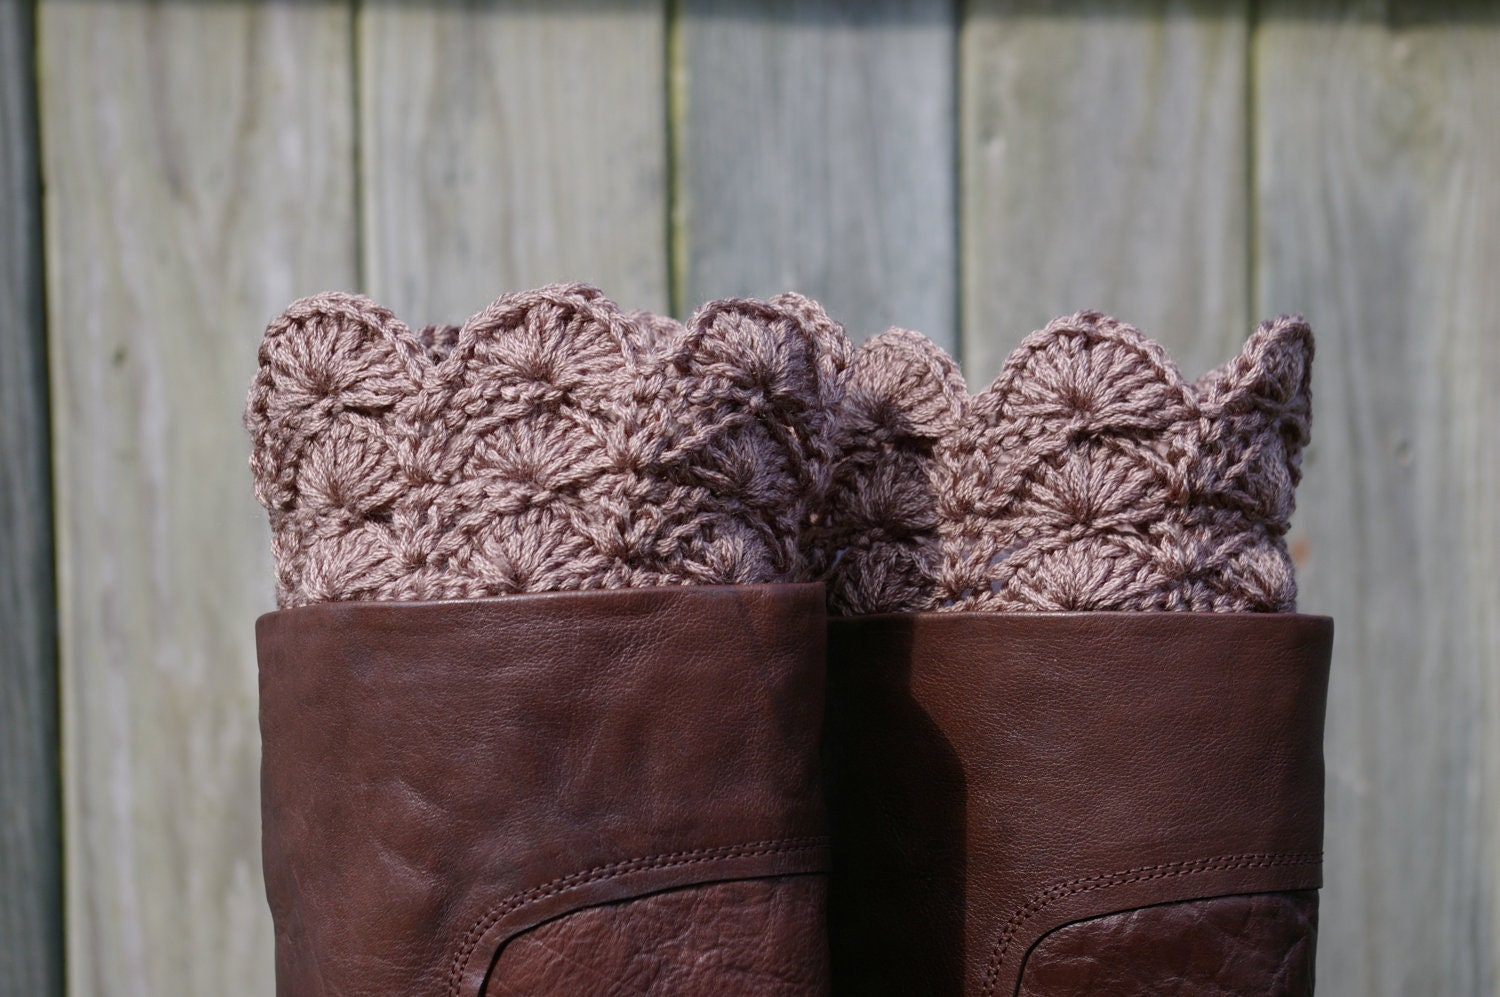 Free crochet patterns boot toppers dancox for boot cuffs in taupe brown crochet boot toppers by free crochet patterns bankloansurffo Images